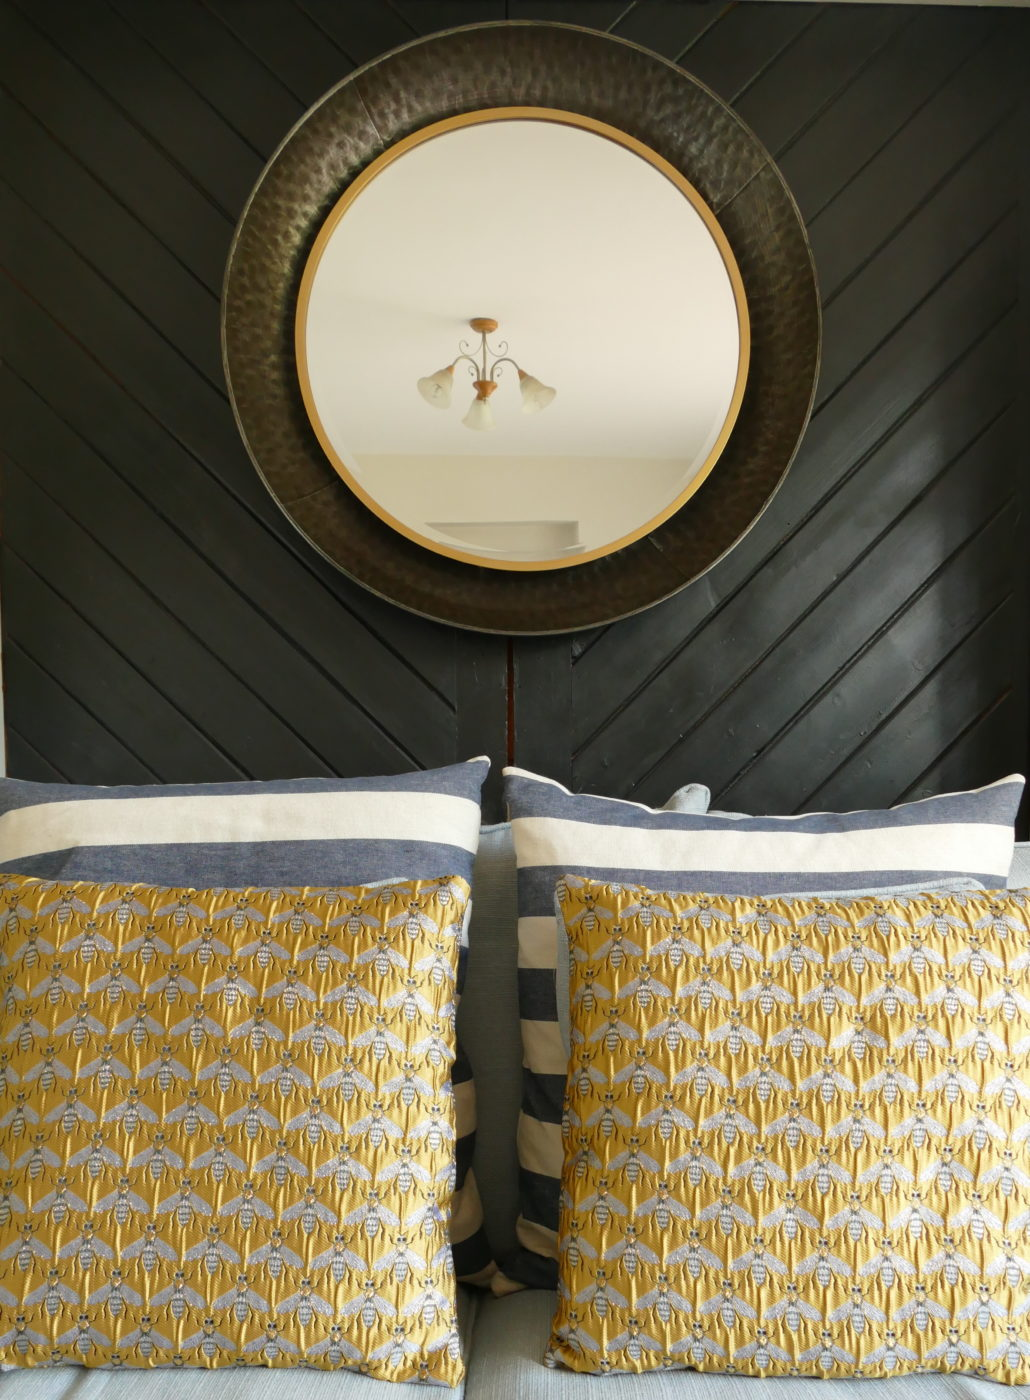 gold bee design cushions against black wall with mirror